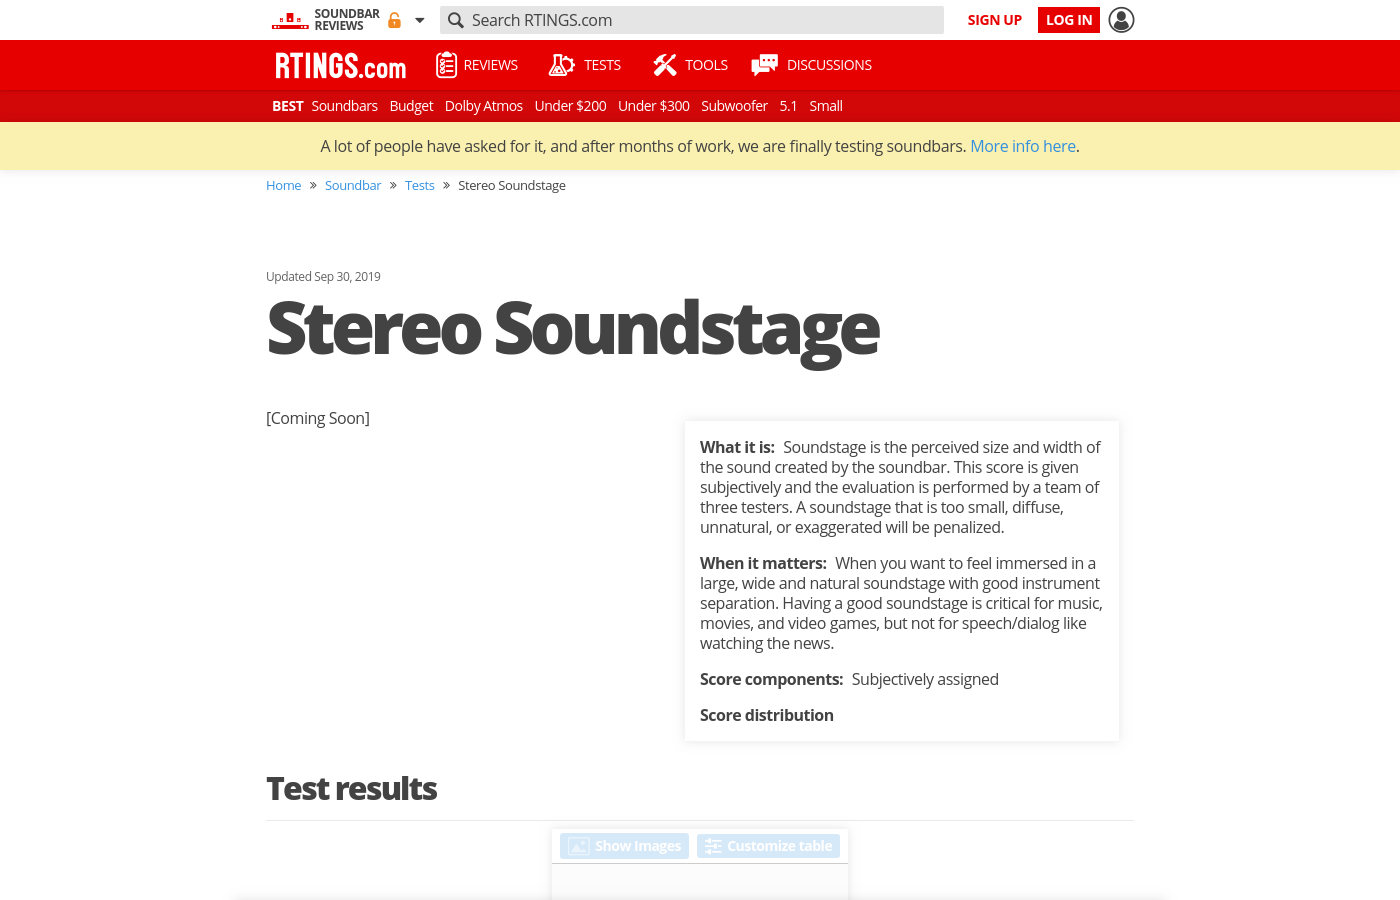 Stereo Soundstage